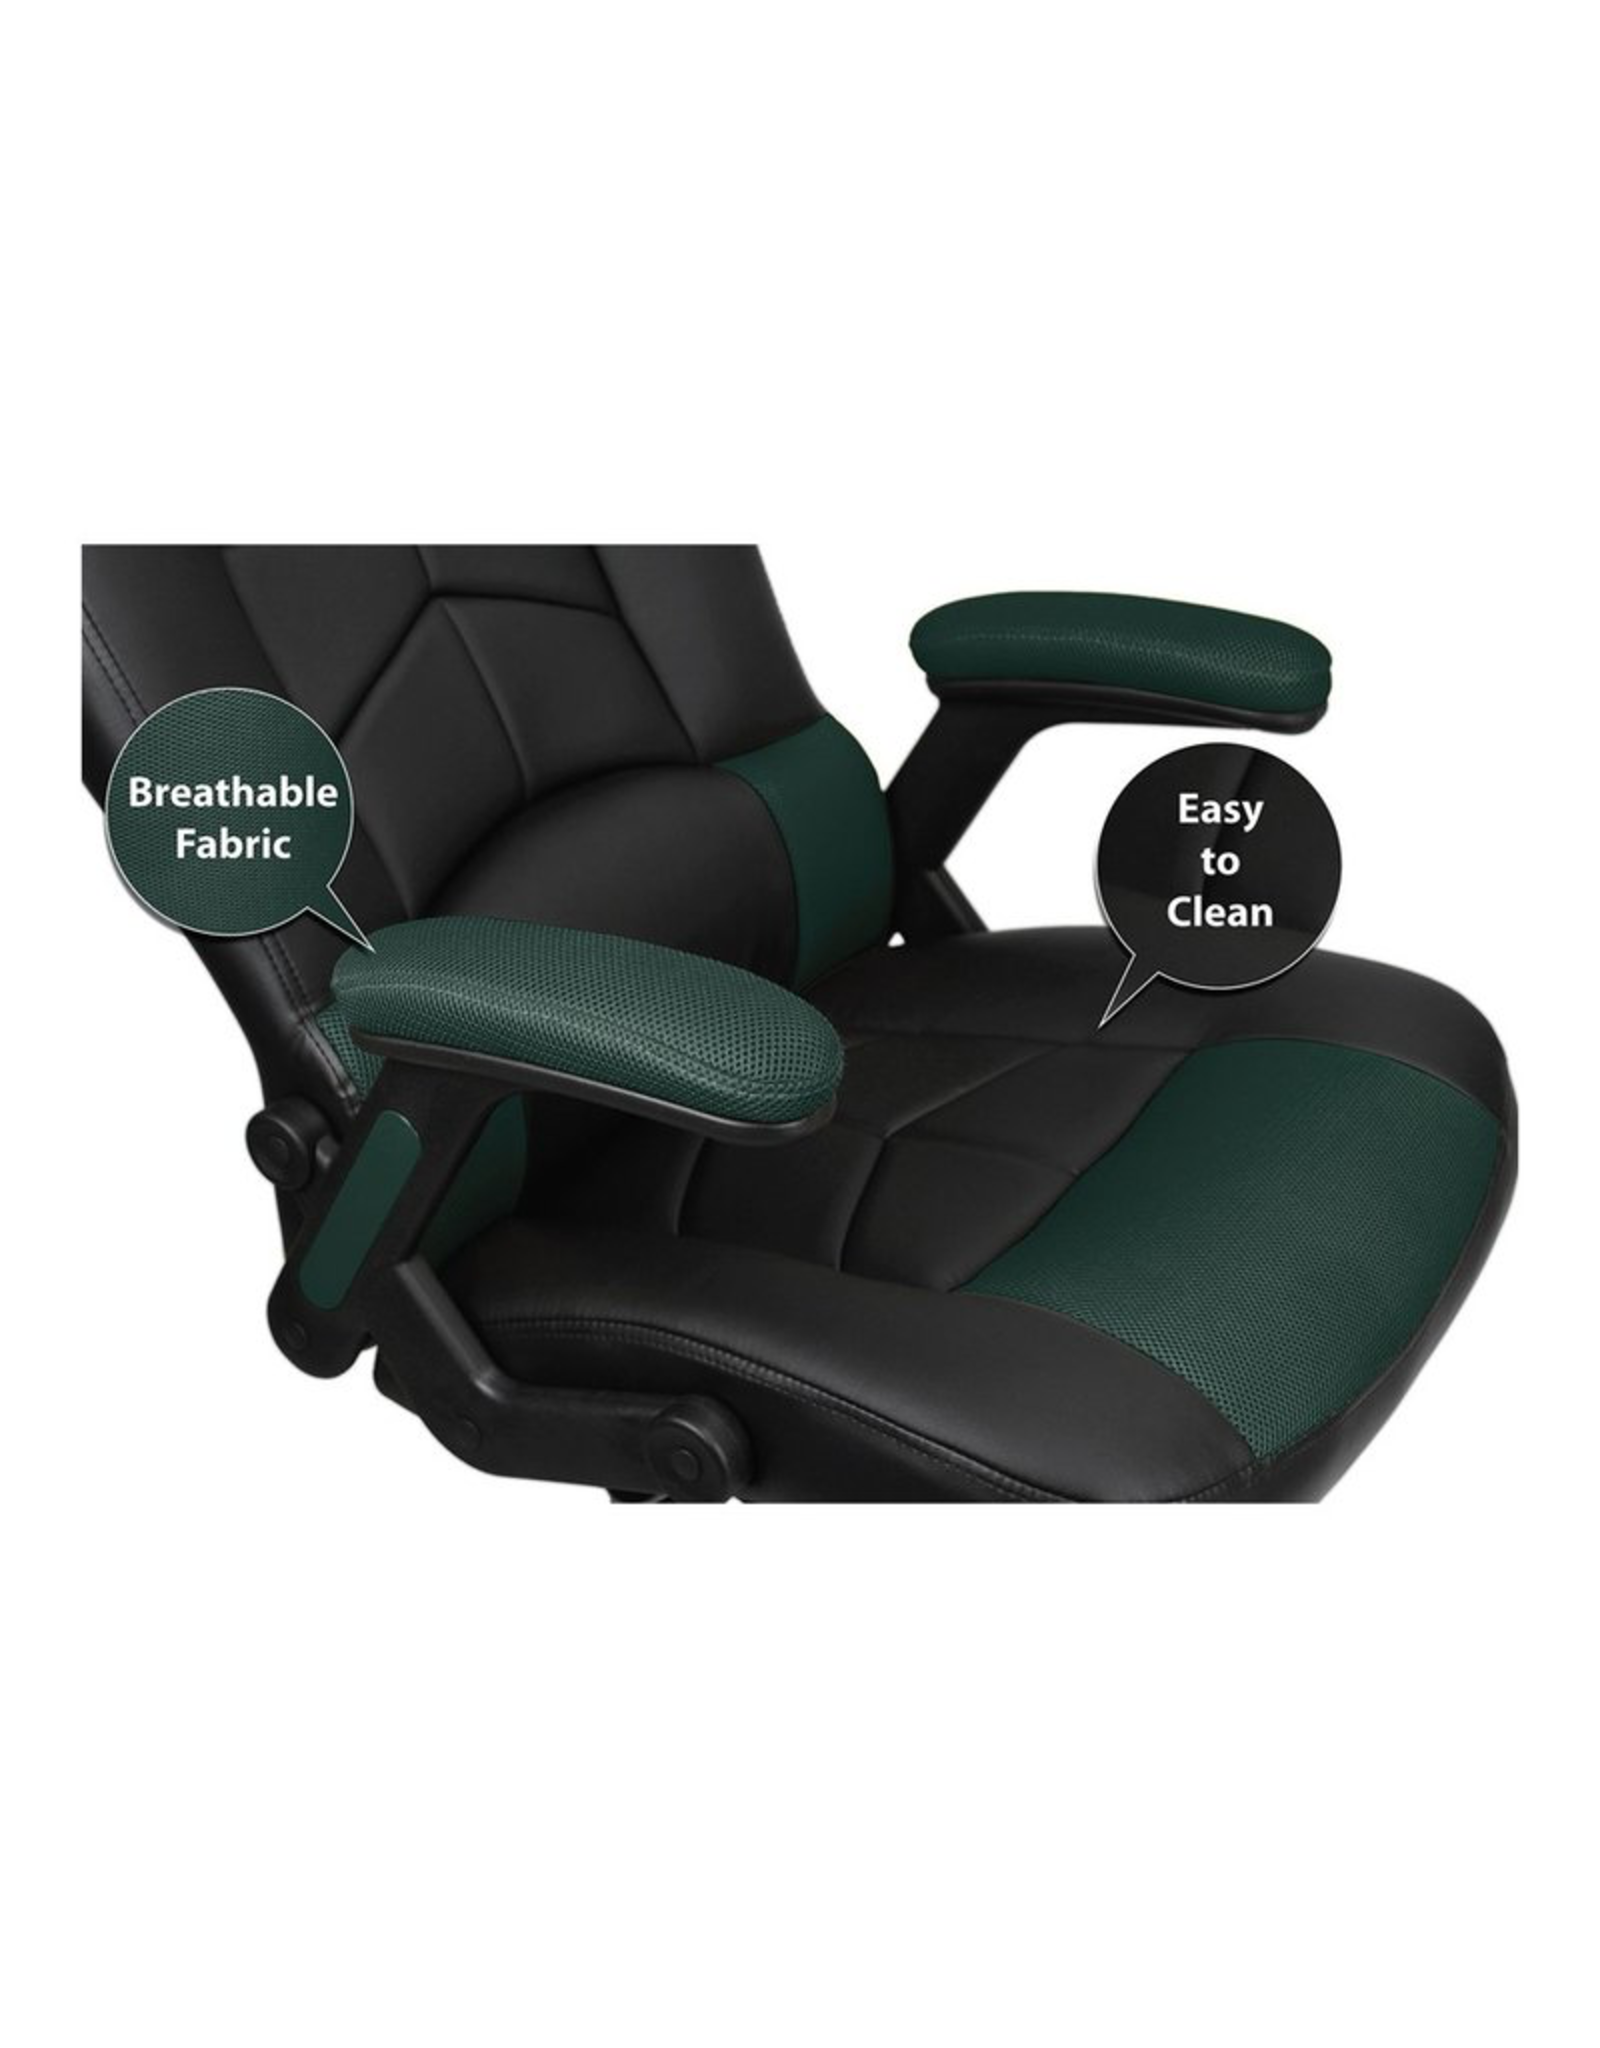 IMPERIAL Green Bay Packers Oversized Gaming/Office Chair